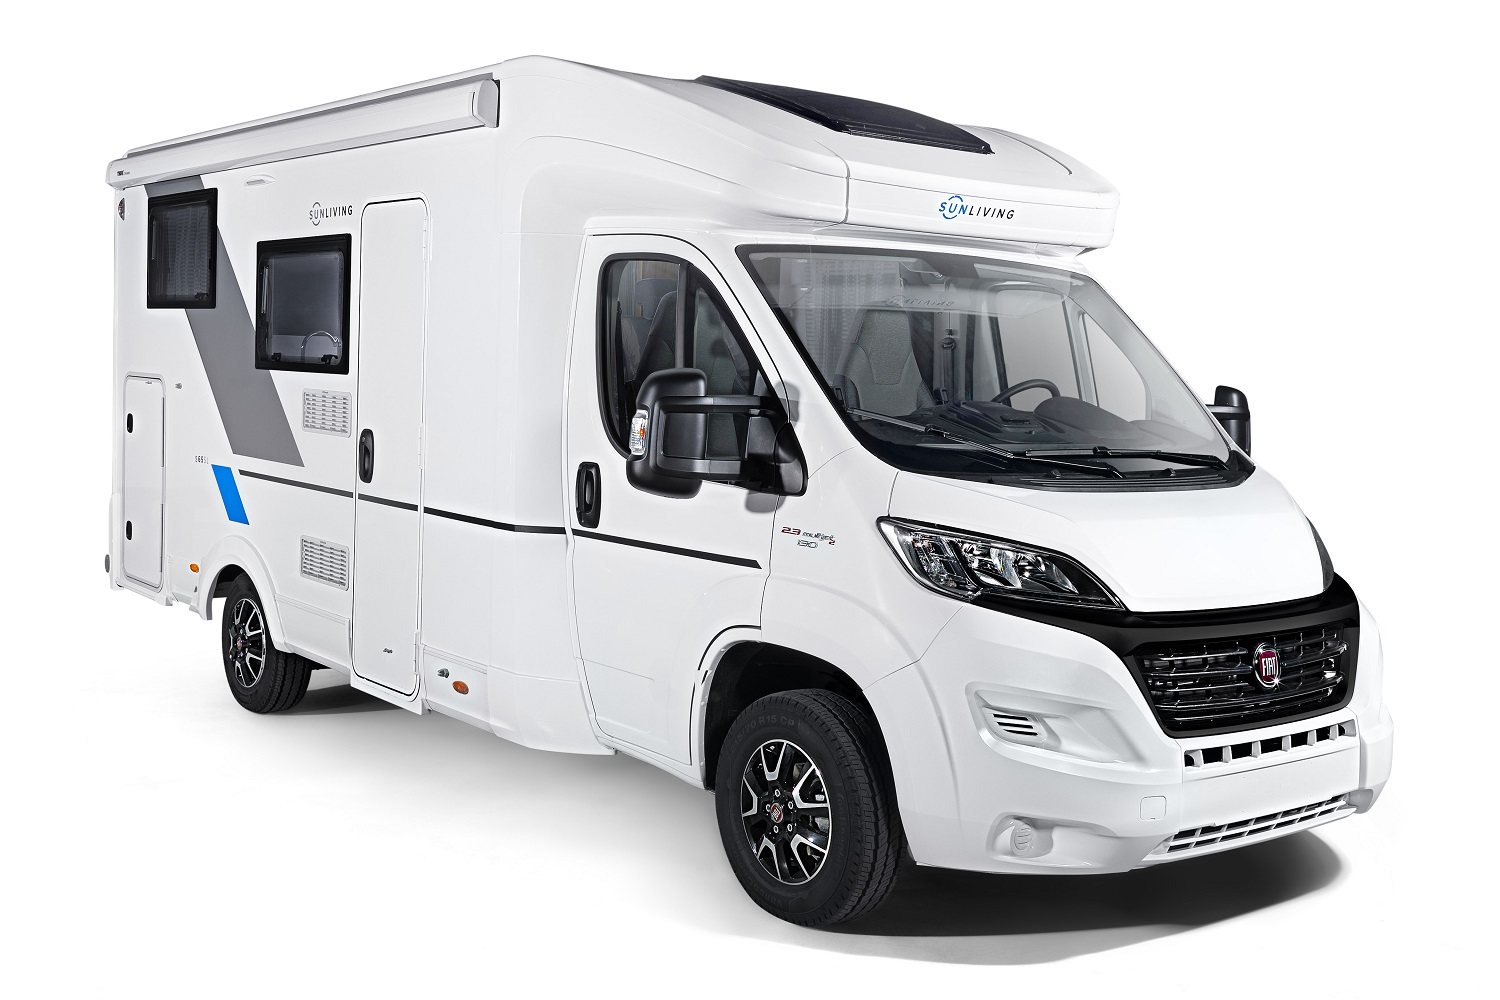 Causeway Campers 3 Berth Low Profile